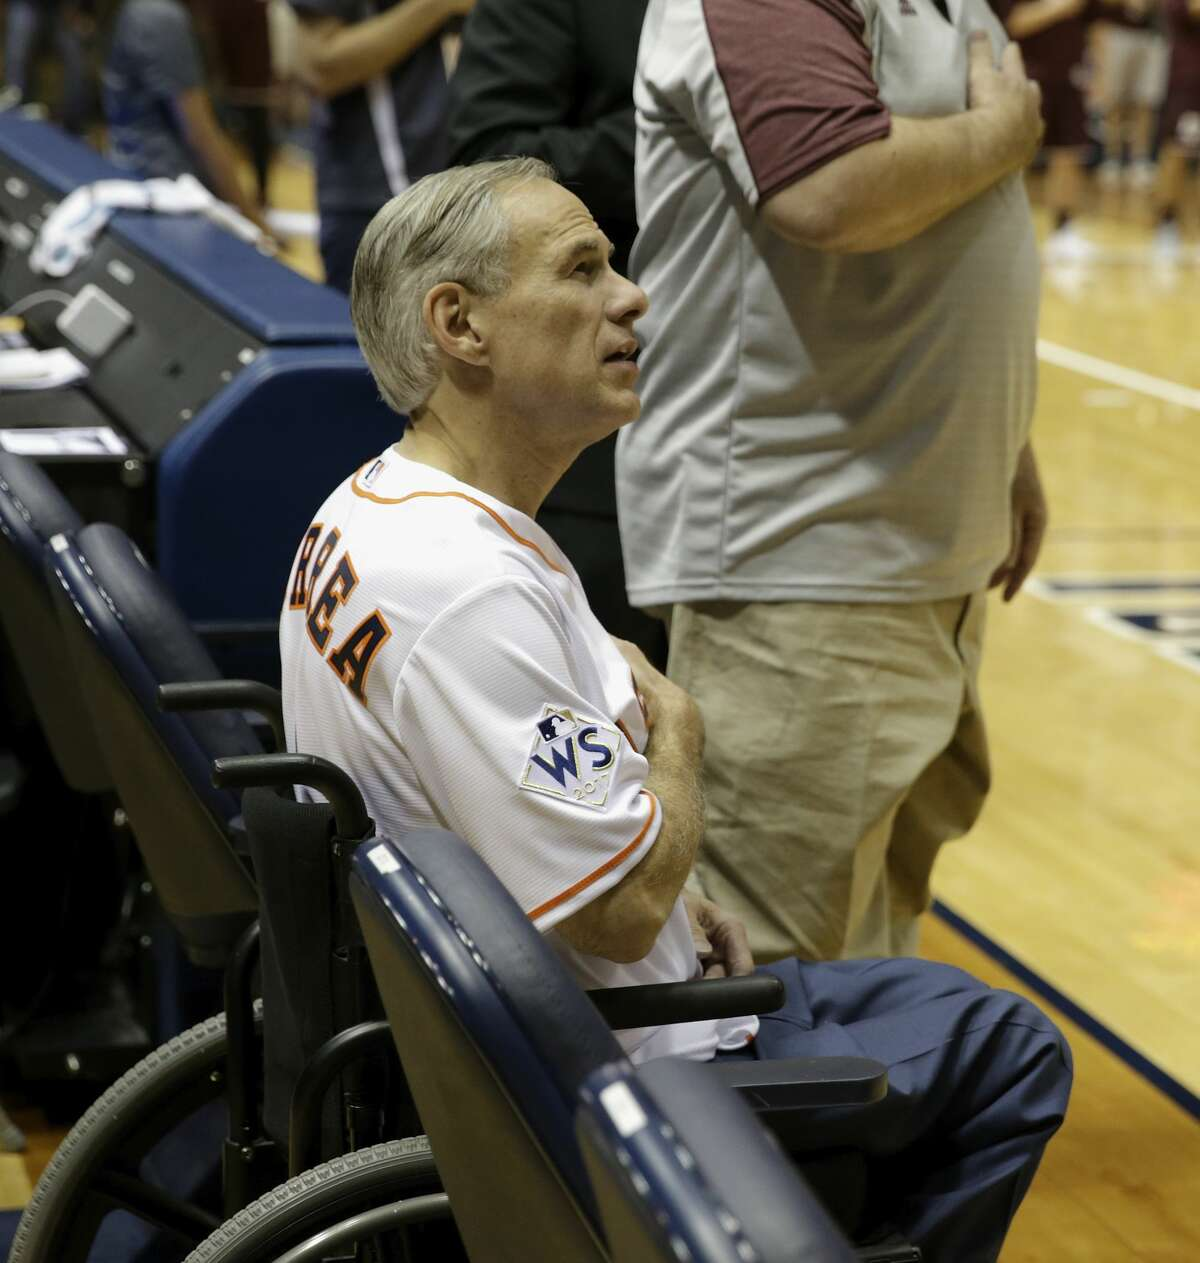 Texas Governor Greg Abbott sings during the National Anthem during the exhibition basketball game between the Texas Longhorns and the Texas A&M Aggies to benefit the Rebuild Texas Relief Fund at Tudor Fieldhouse in Houston, TX on Wednesday, October 25, 2017.